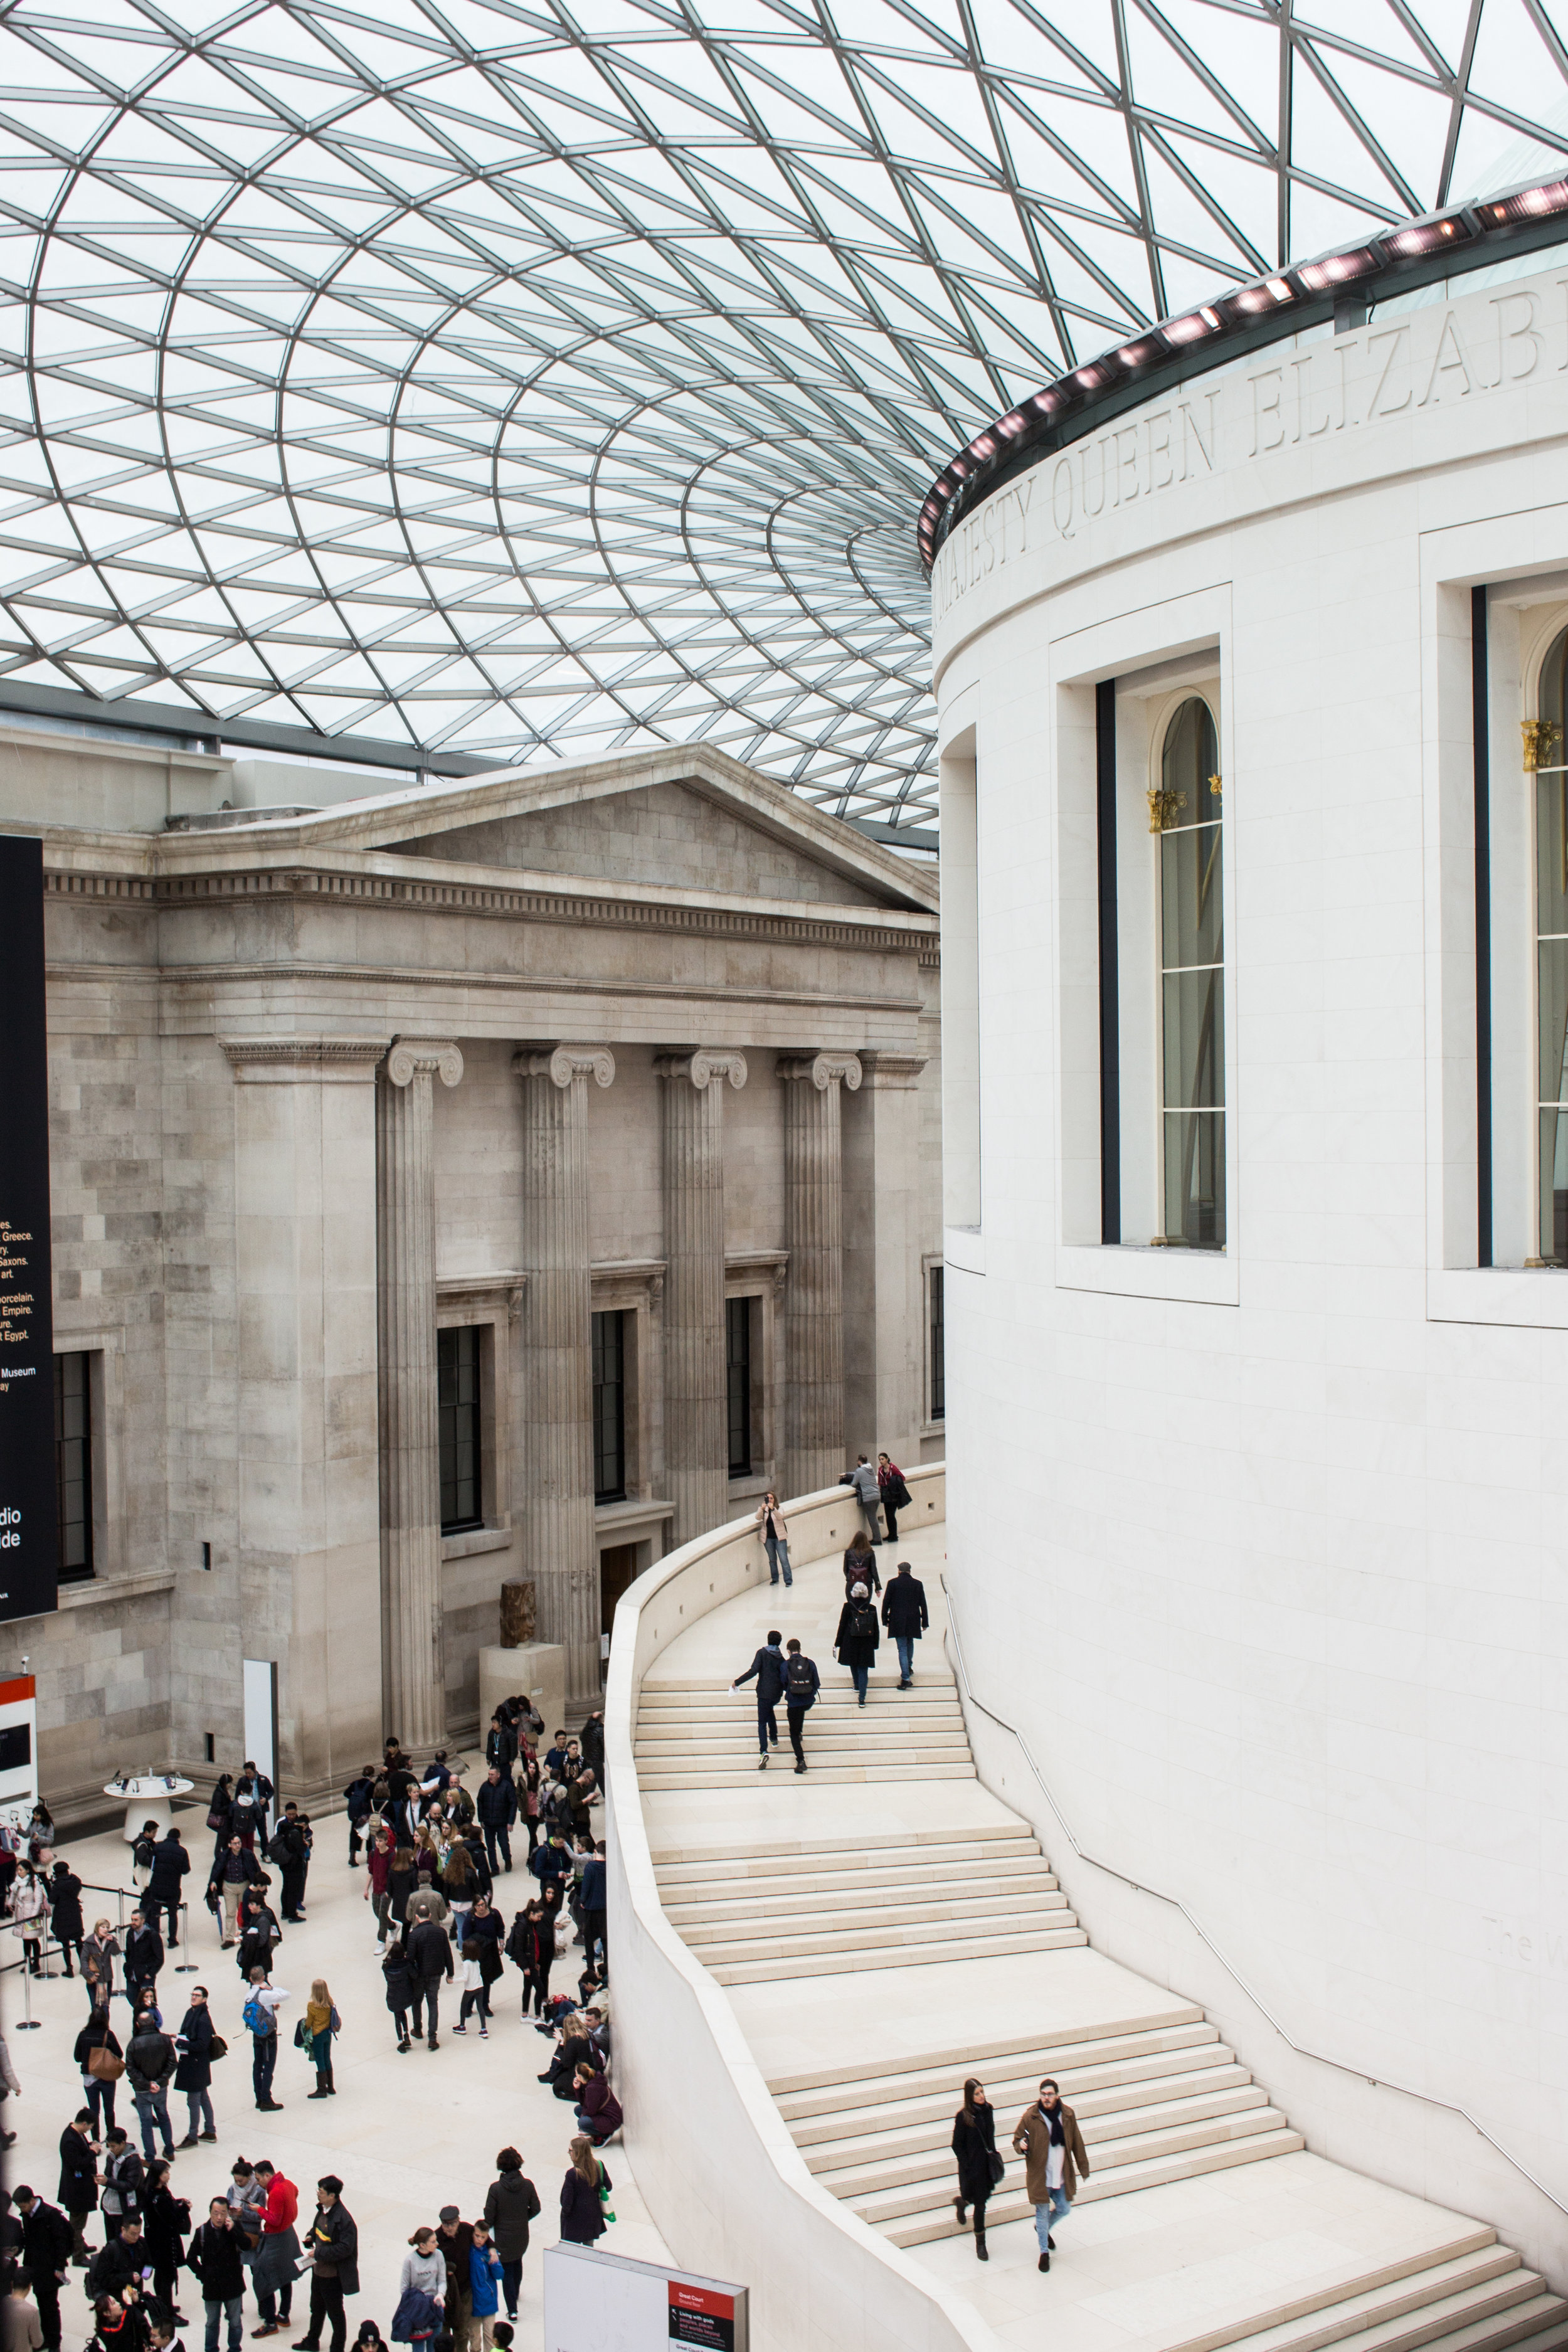 We will do a highlights tour of the main galleries, which are arranged around the Great Court, one of the most breath-taking and uplifting spaces of modern architecture in London.